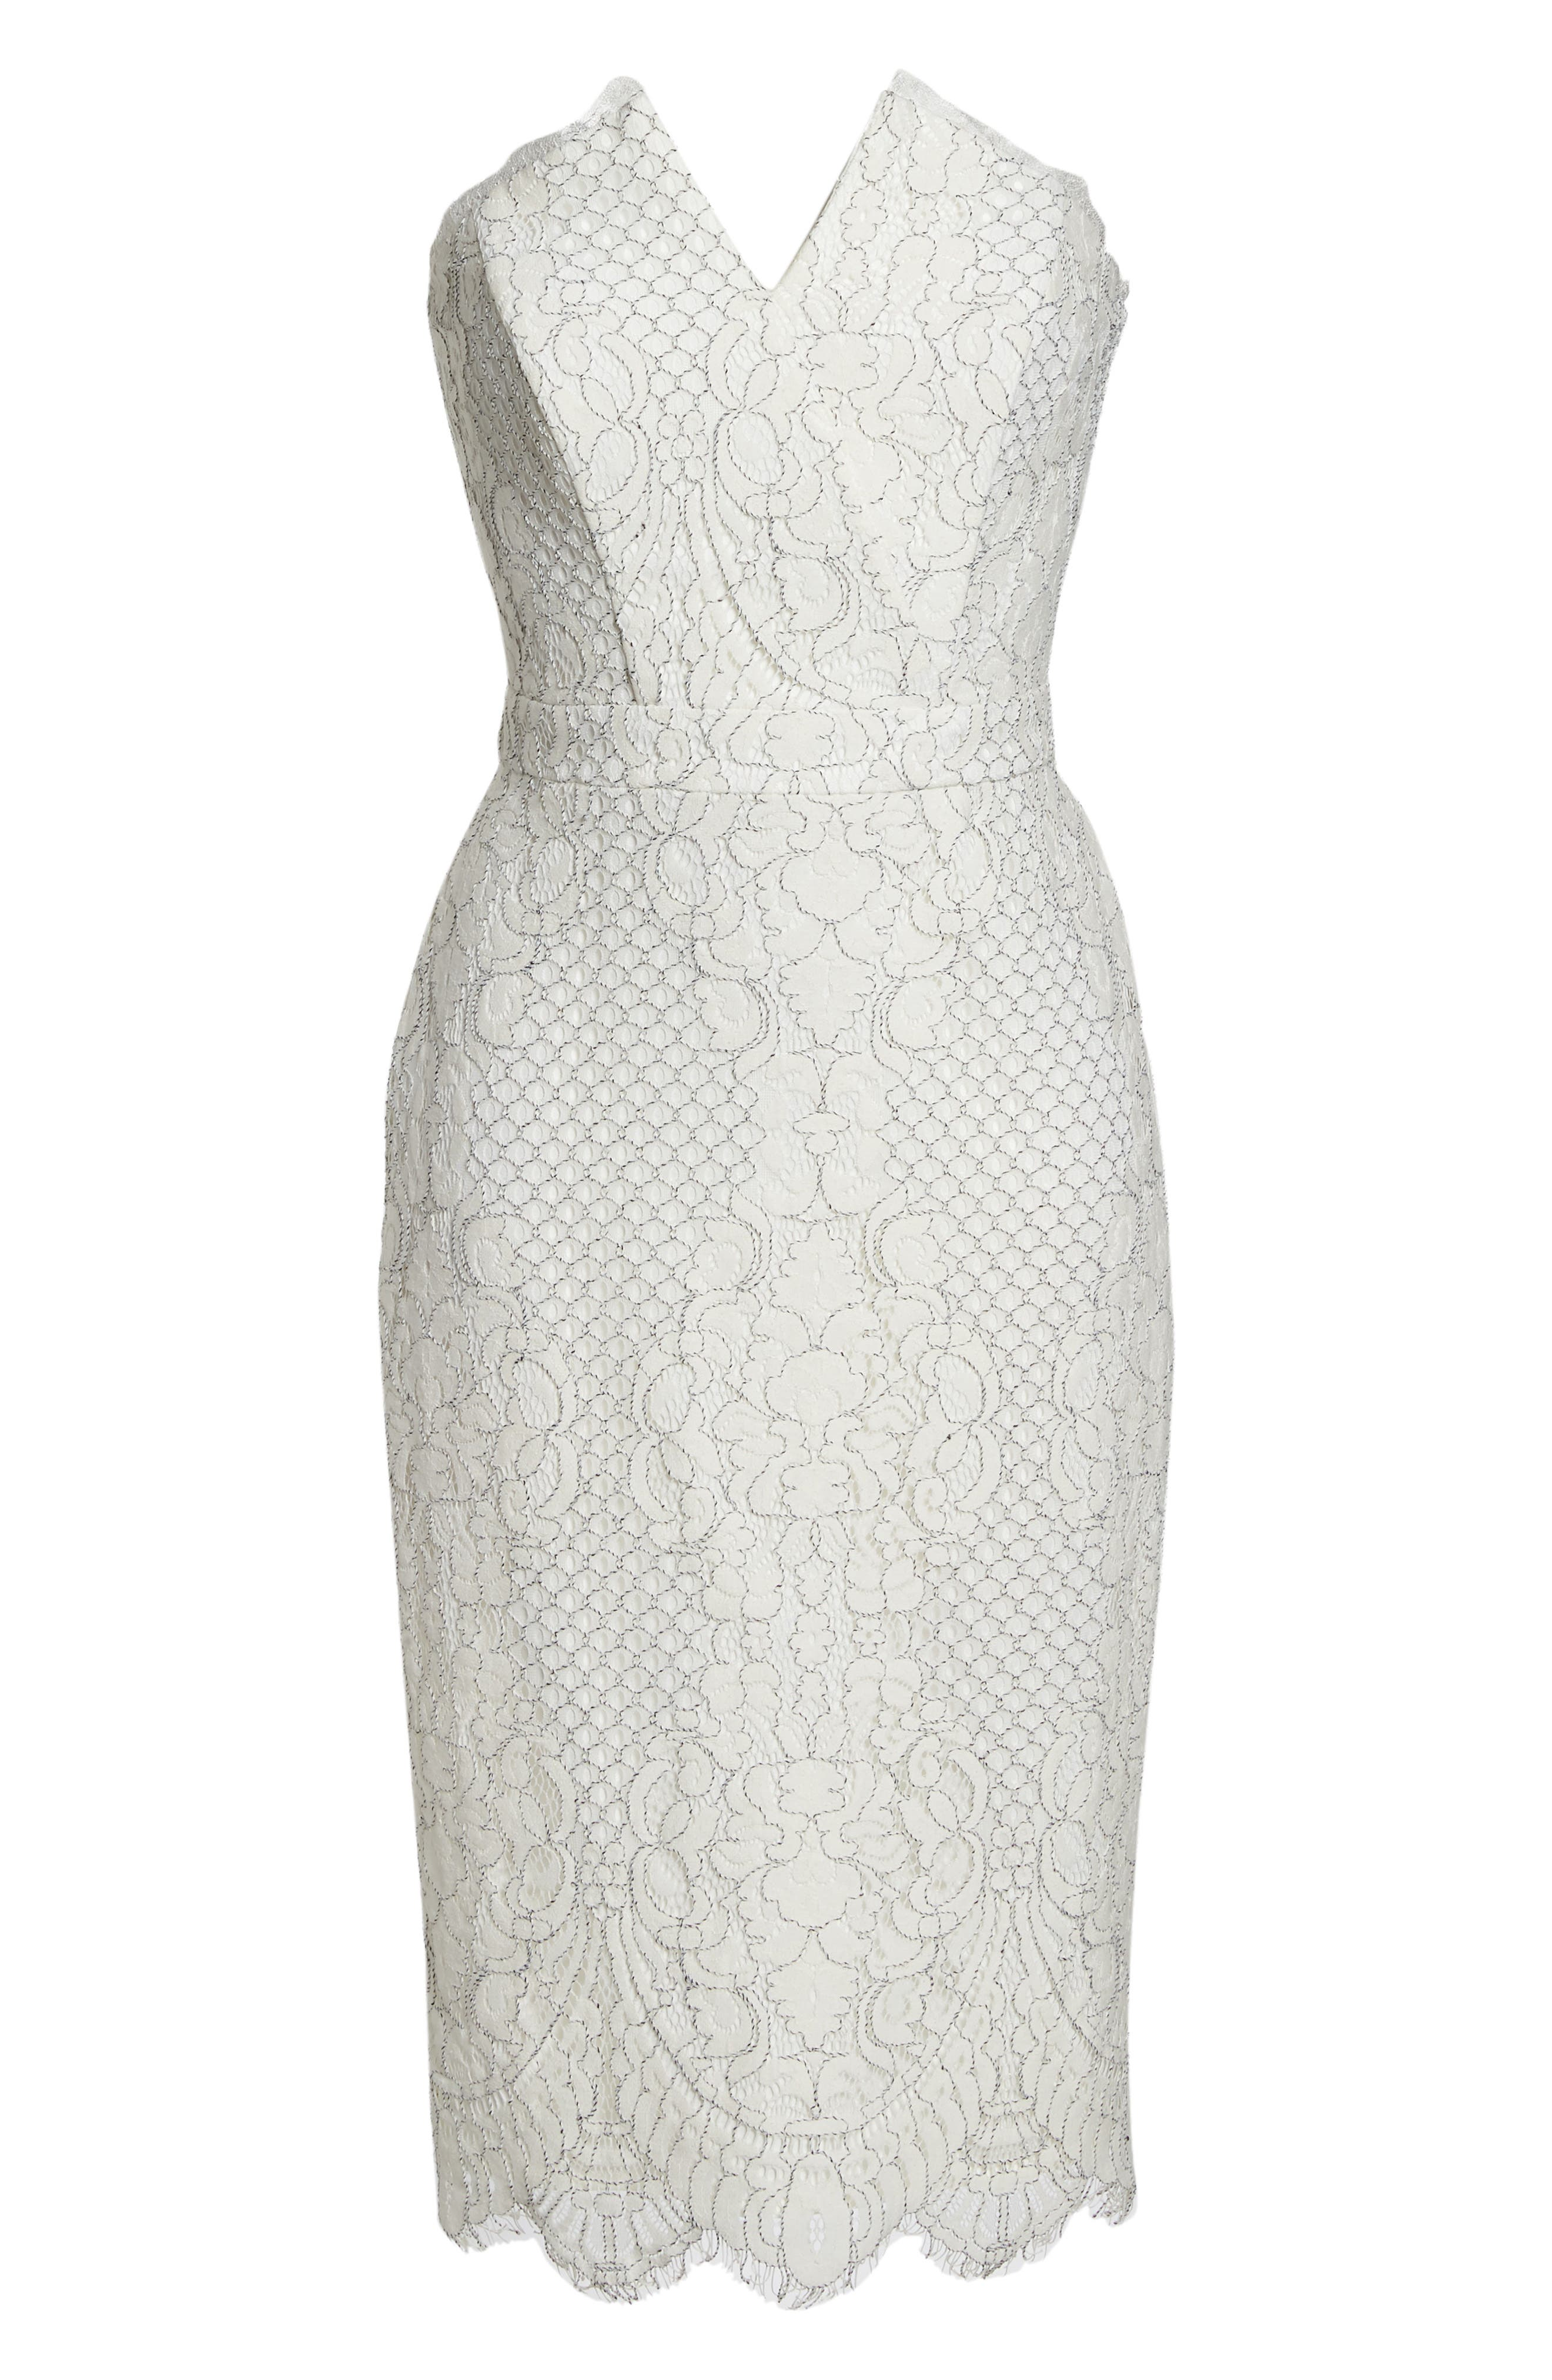 HARLYN,                             Strapless Lace Cocktail Dress,                             Alternate thumbnail 7, color,                             902